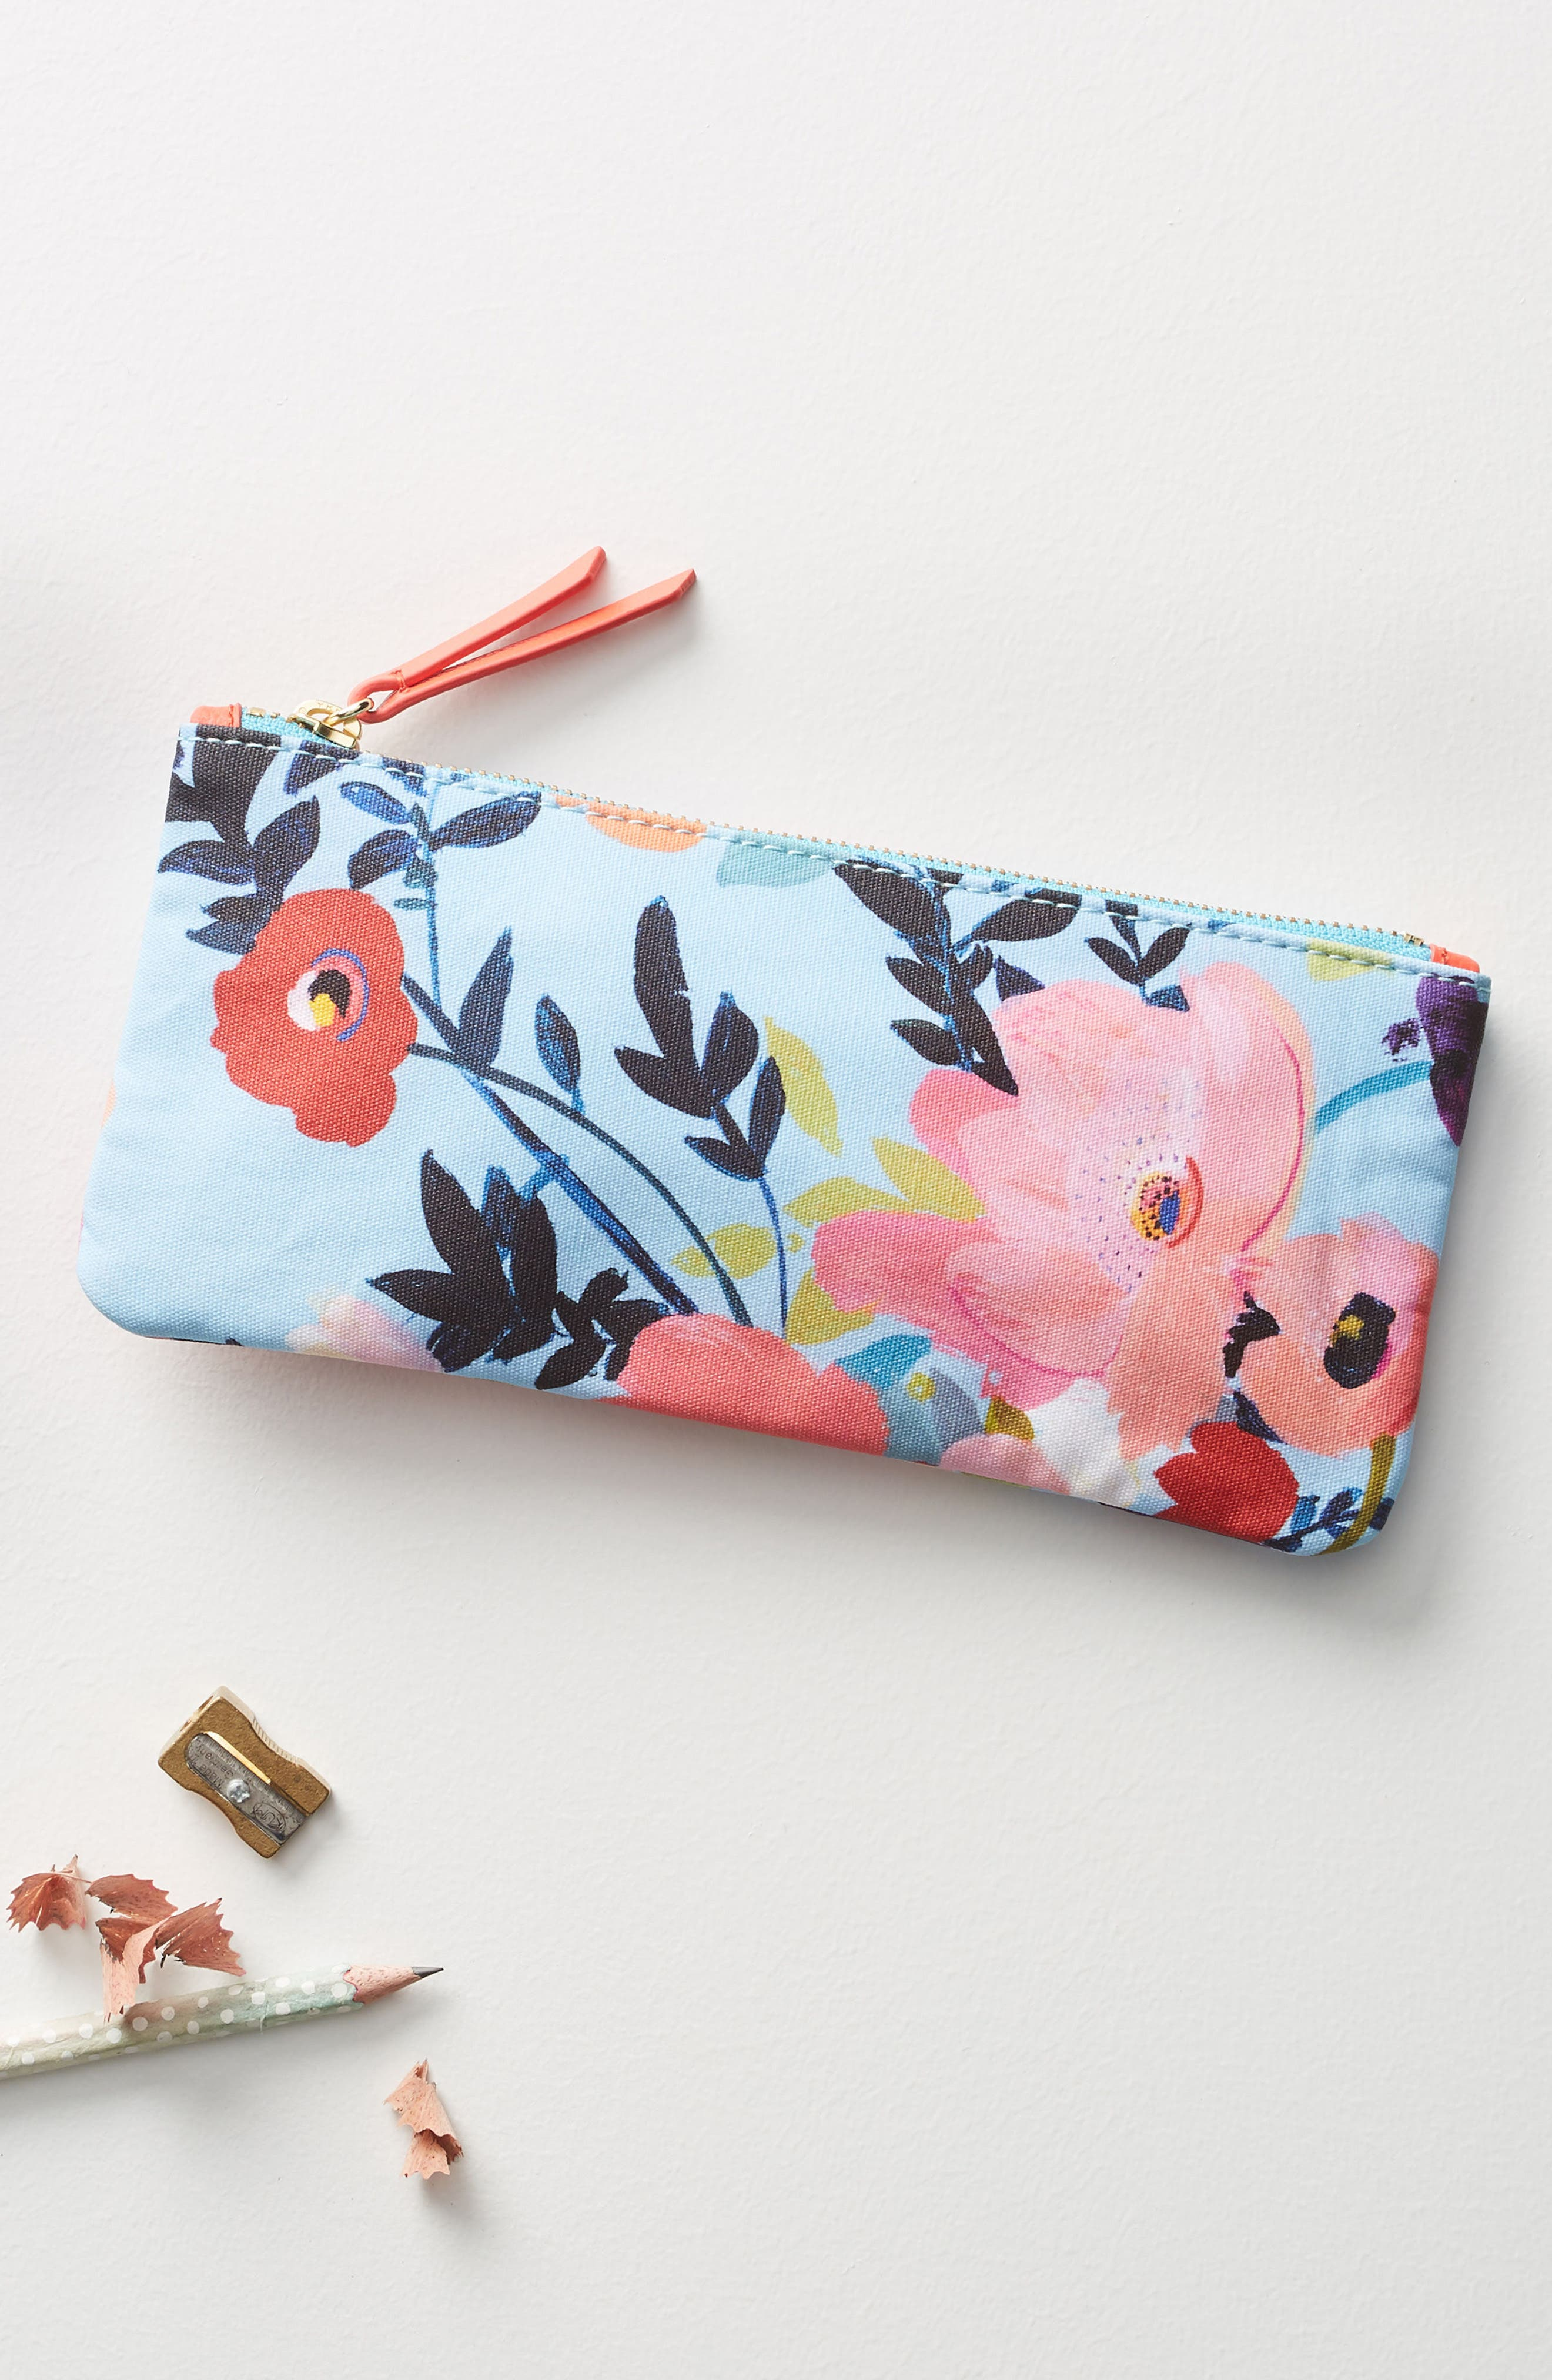 Picturesque Florals Pencil Pouch,                         Main,                         color, 400